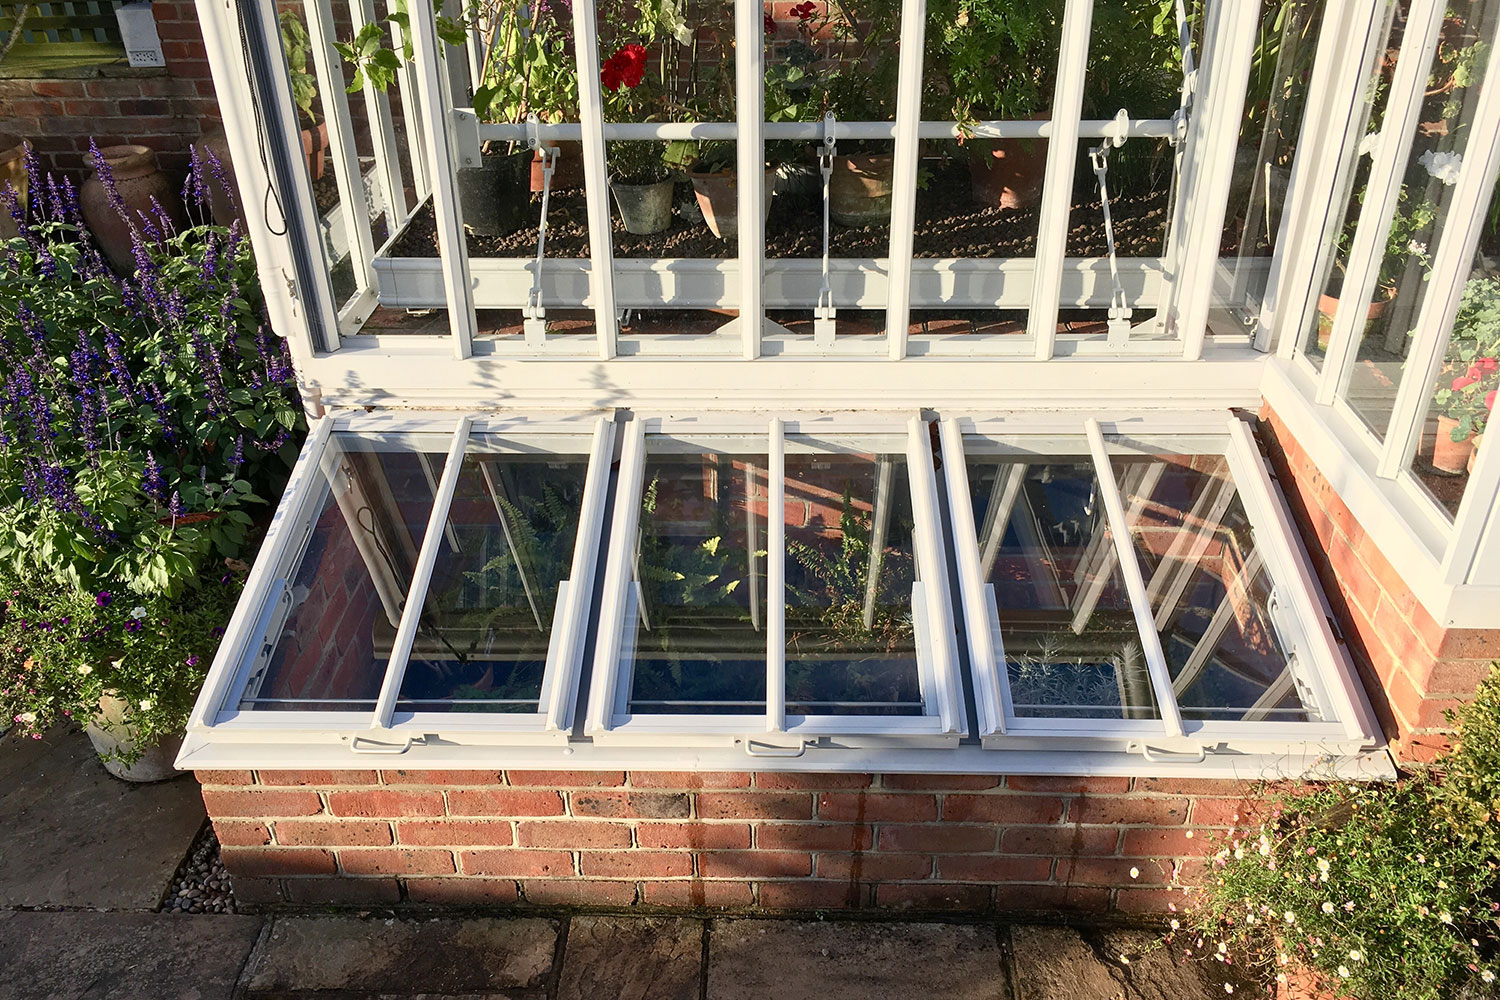 Cold frames closed (Alitex greenhouse accessories)